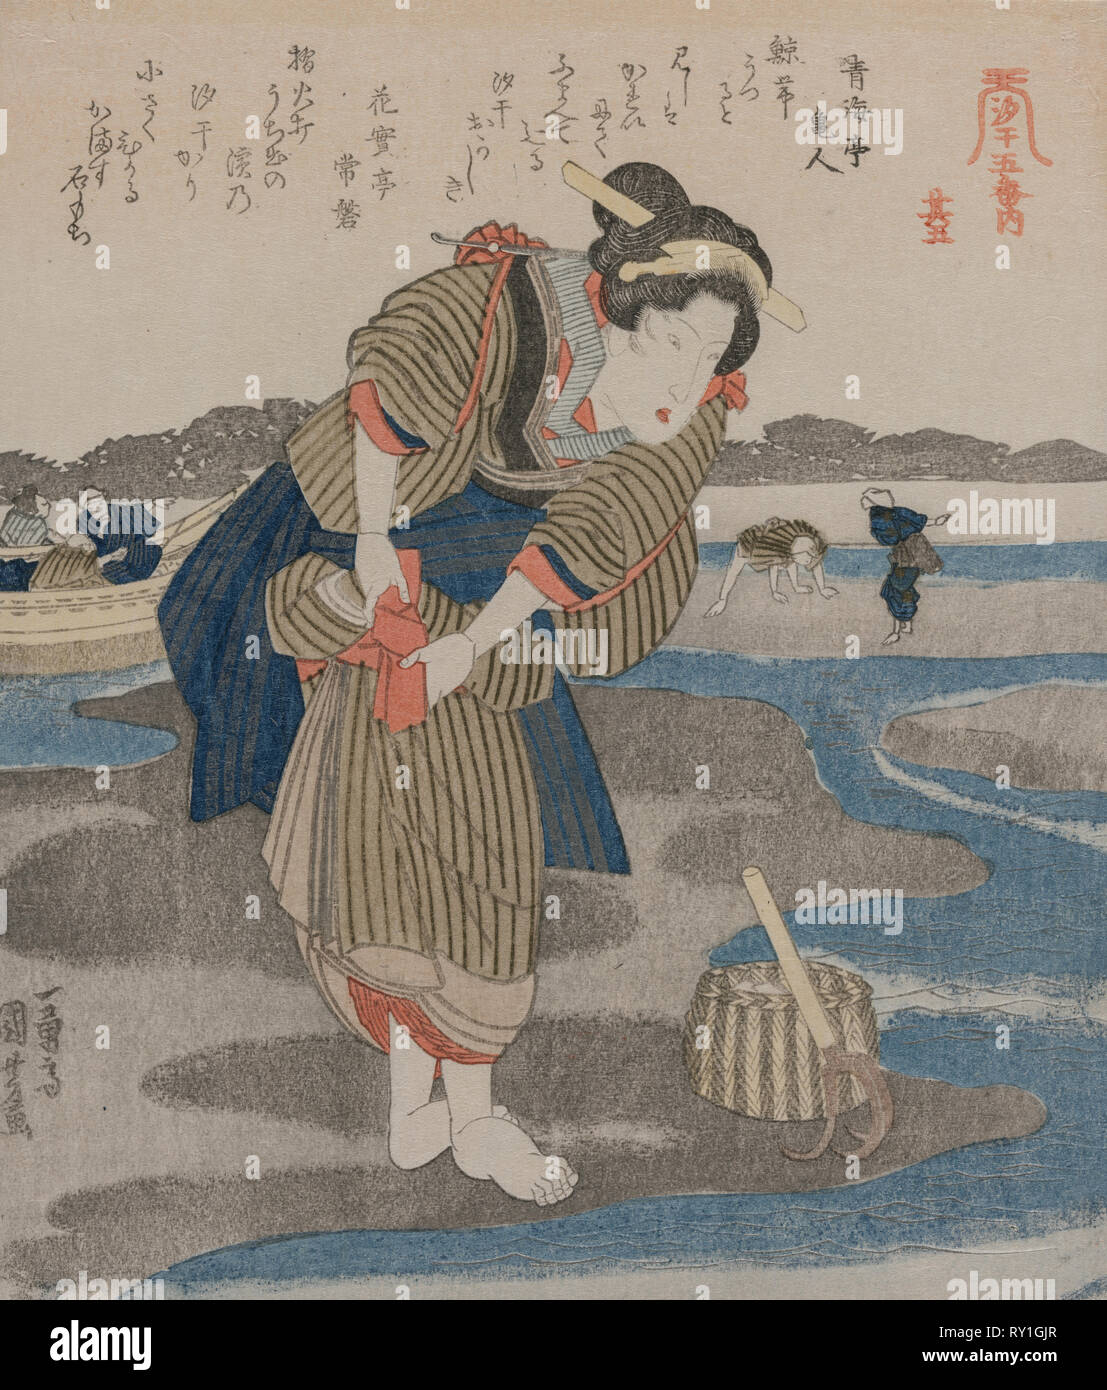 Woman Fastening her Skirts; from the series Five Pictures of Low Tide, late 1820s. Utagawa Kuniyoshi (Japanese, 1797-1861). Color woodblock print; sheet: 21.2 x 18.4 cm (8 3/8 x 7 1/4 in - Stock Image